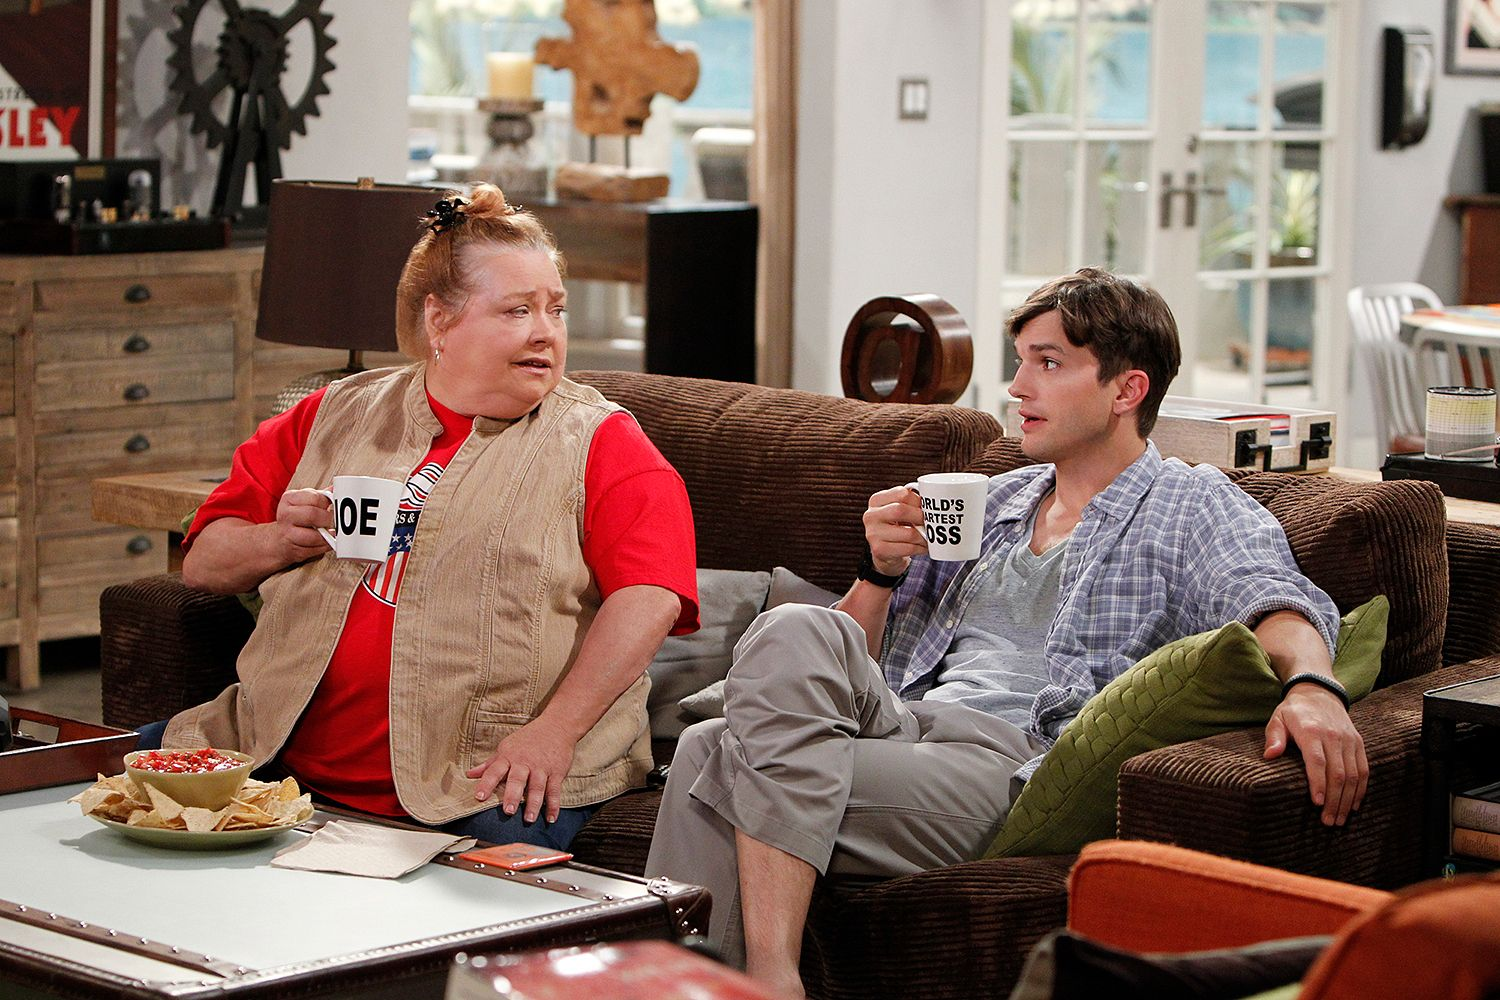 Conchata Ferrell, Star of Two and a Half Men, Dead at 77 | PEOPLE.com